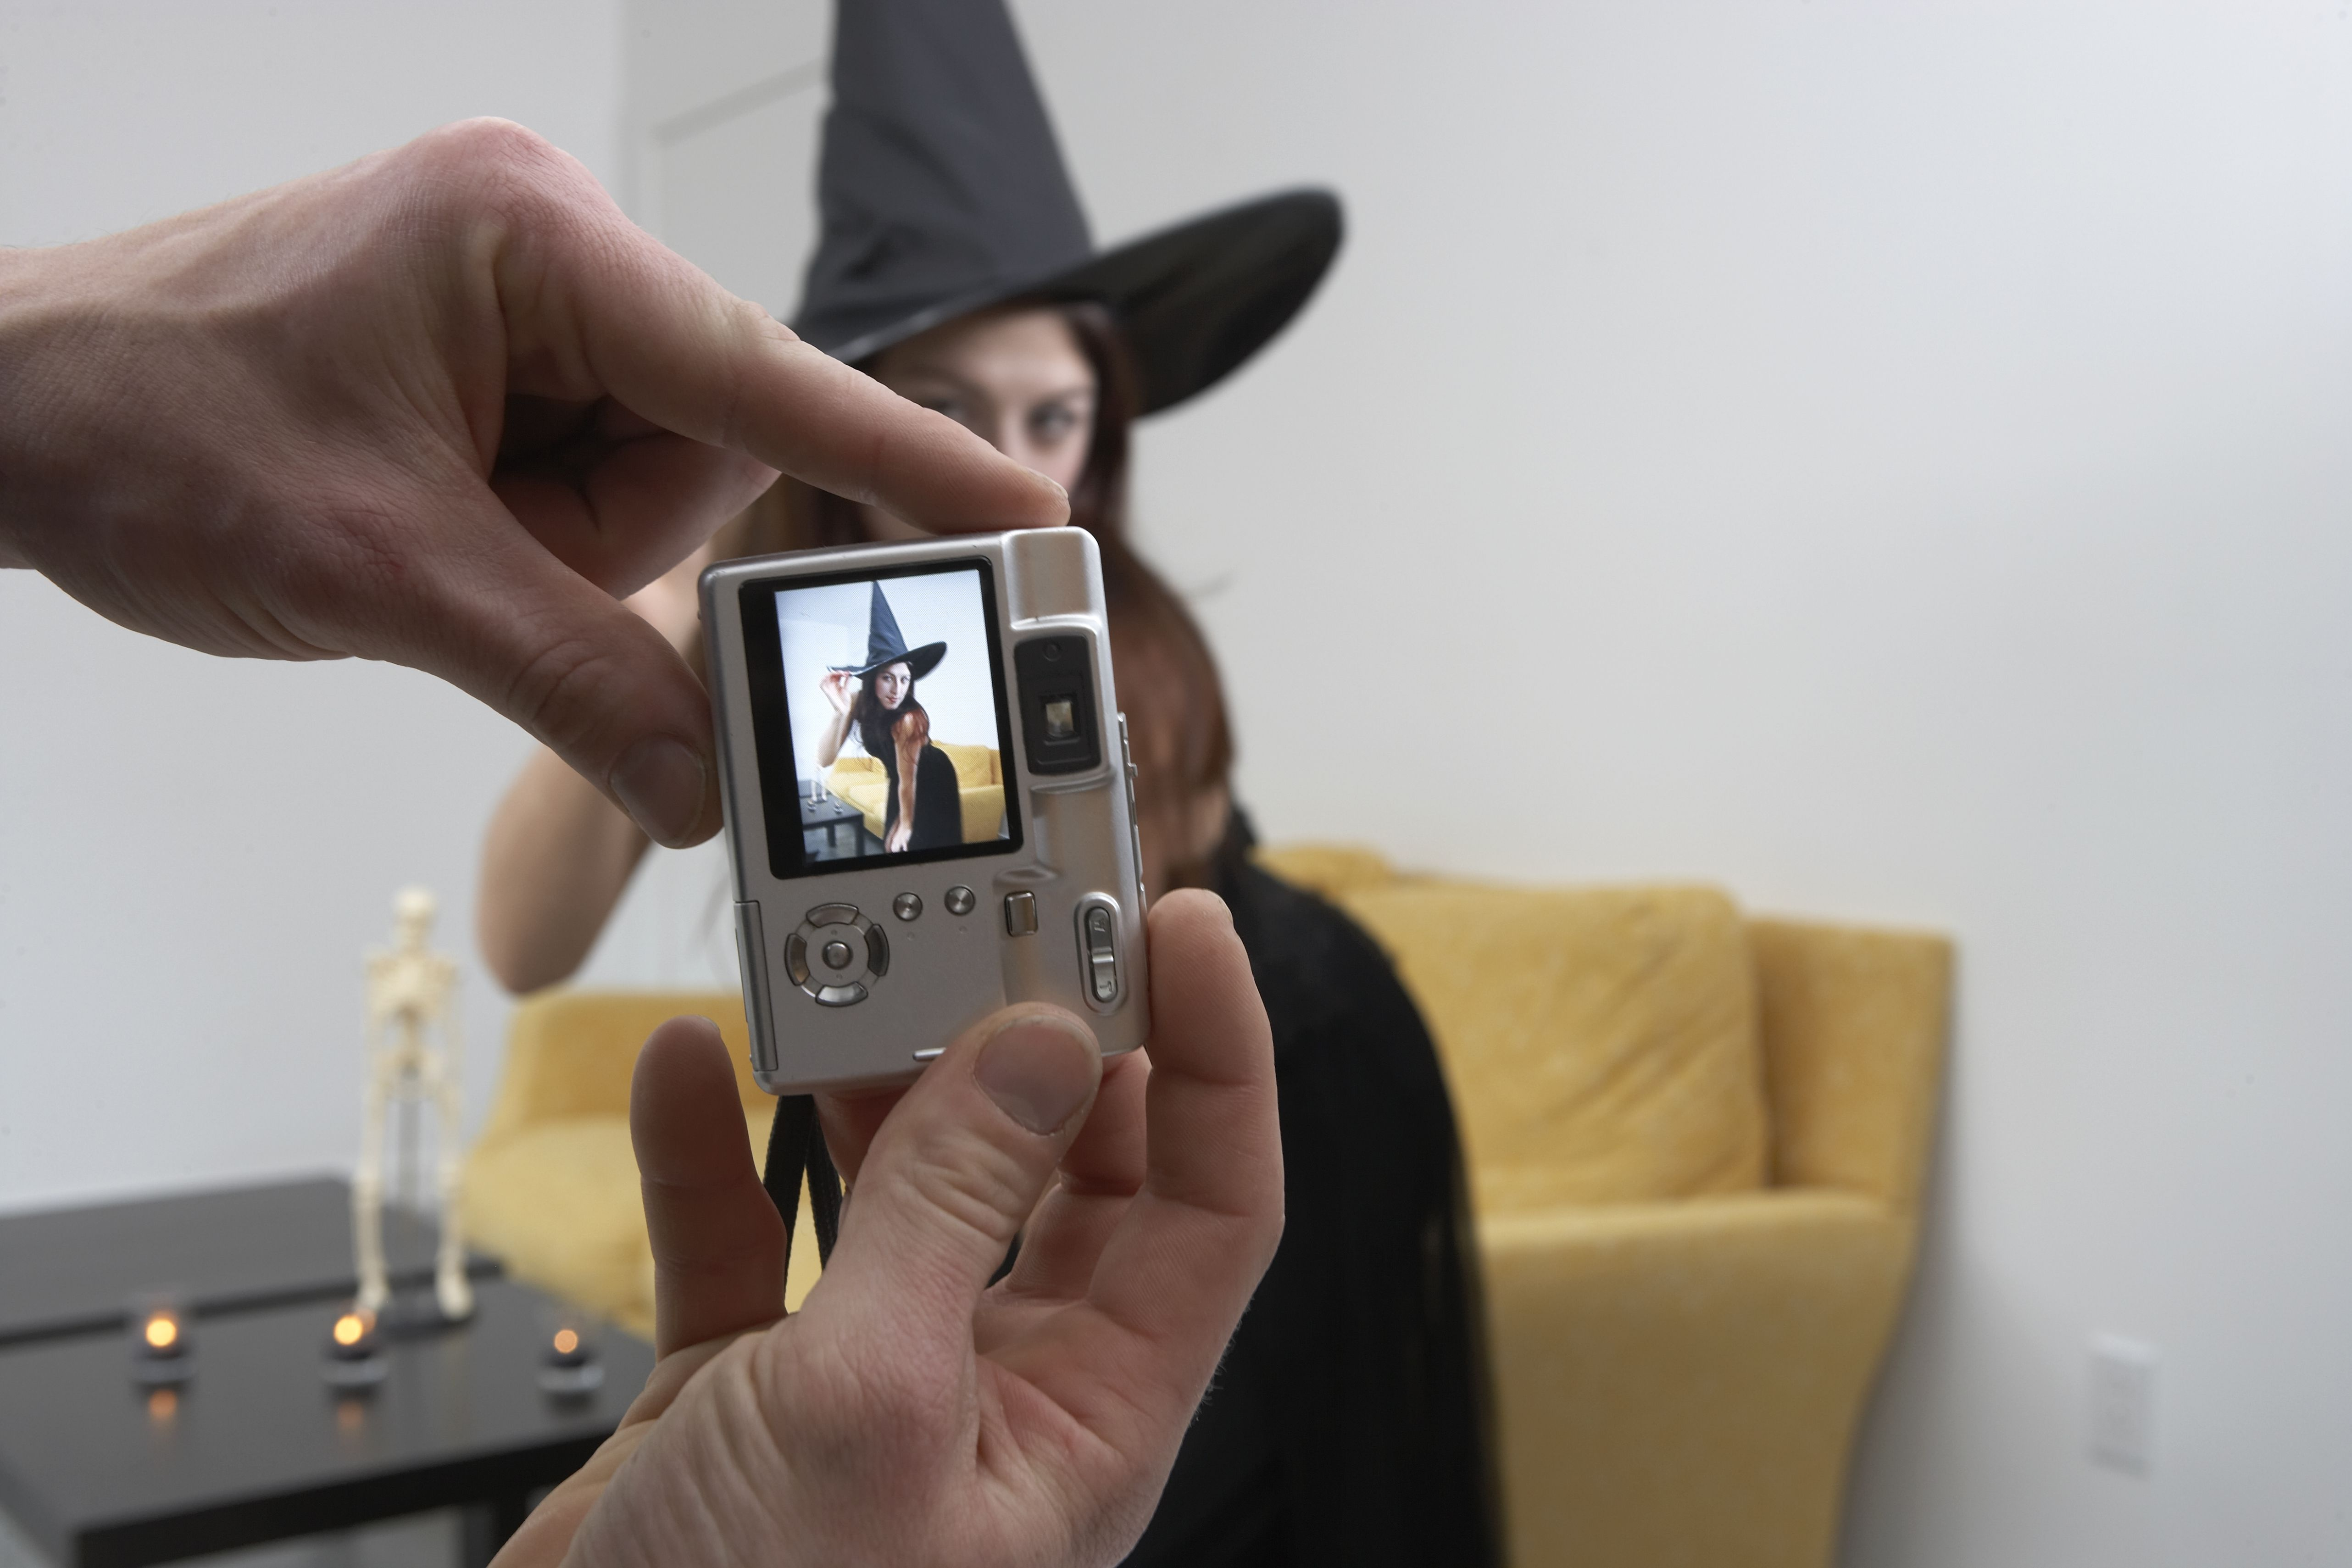 Person Taking a Halloween Costume Contest Photo